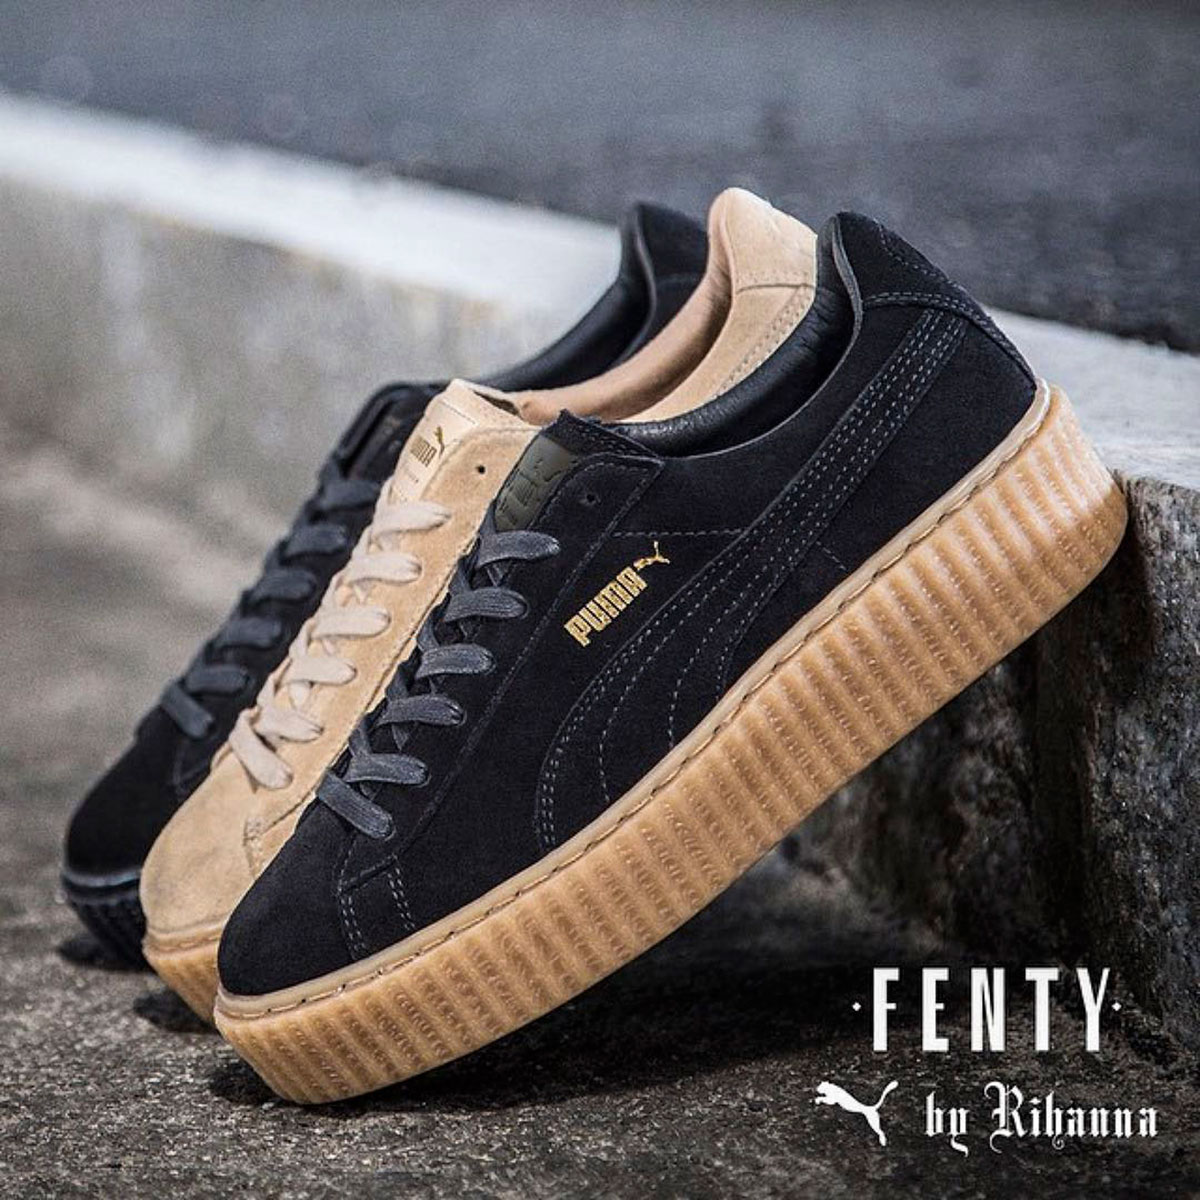 Rihanna Fenty Puma Creepers sold out  online